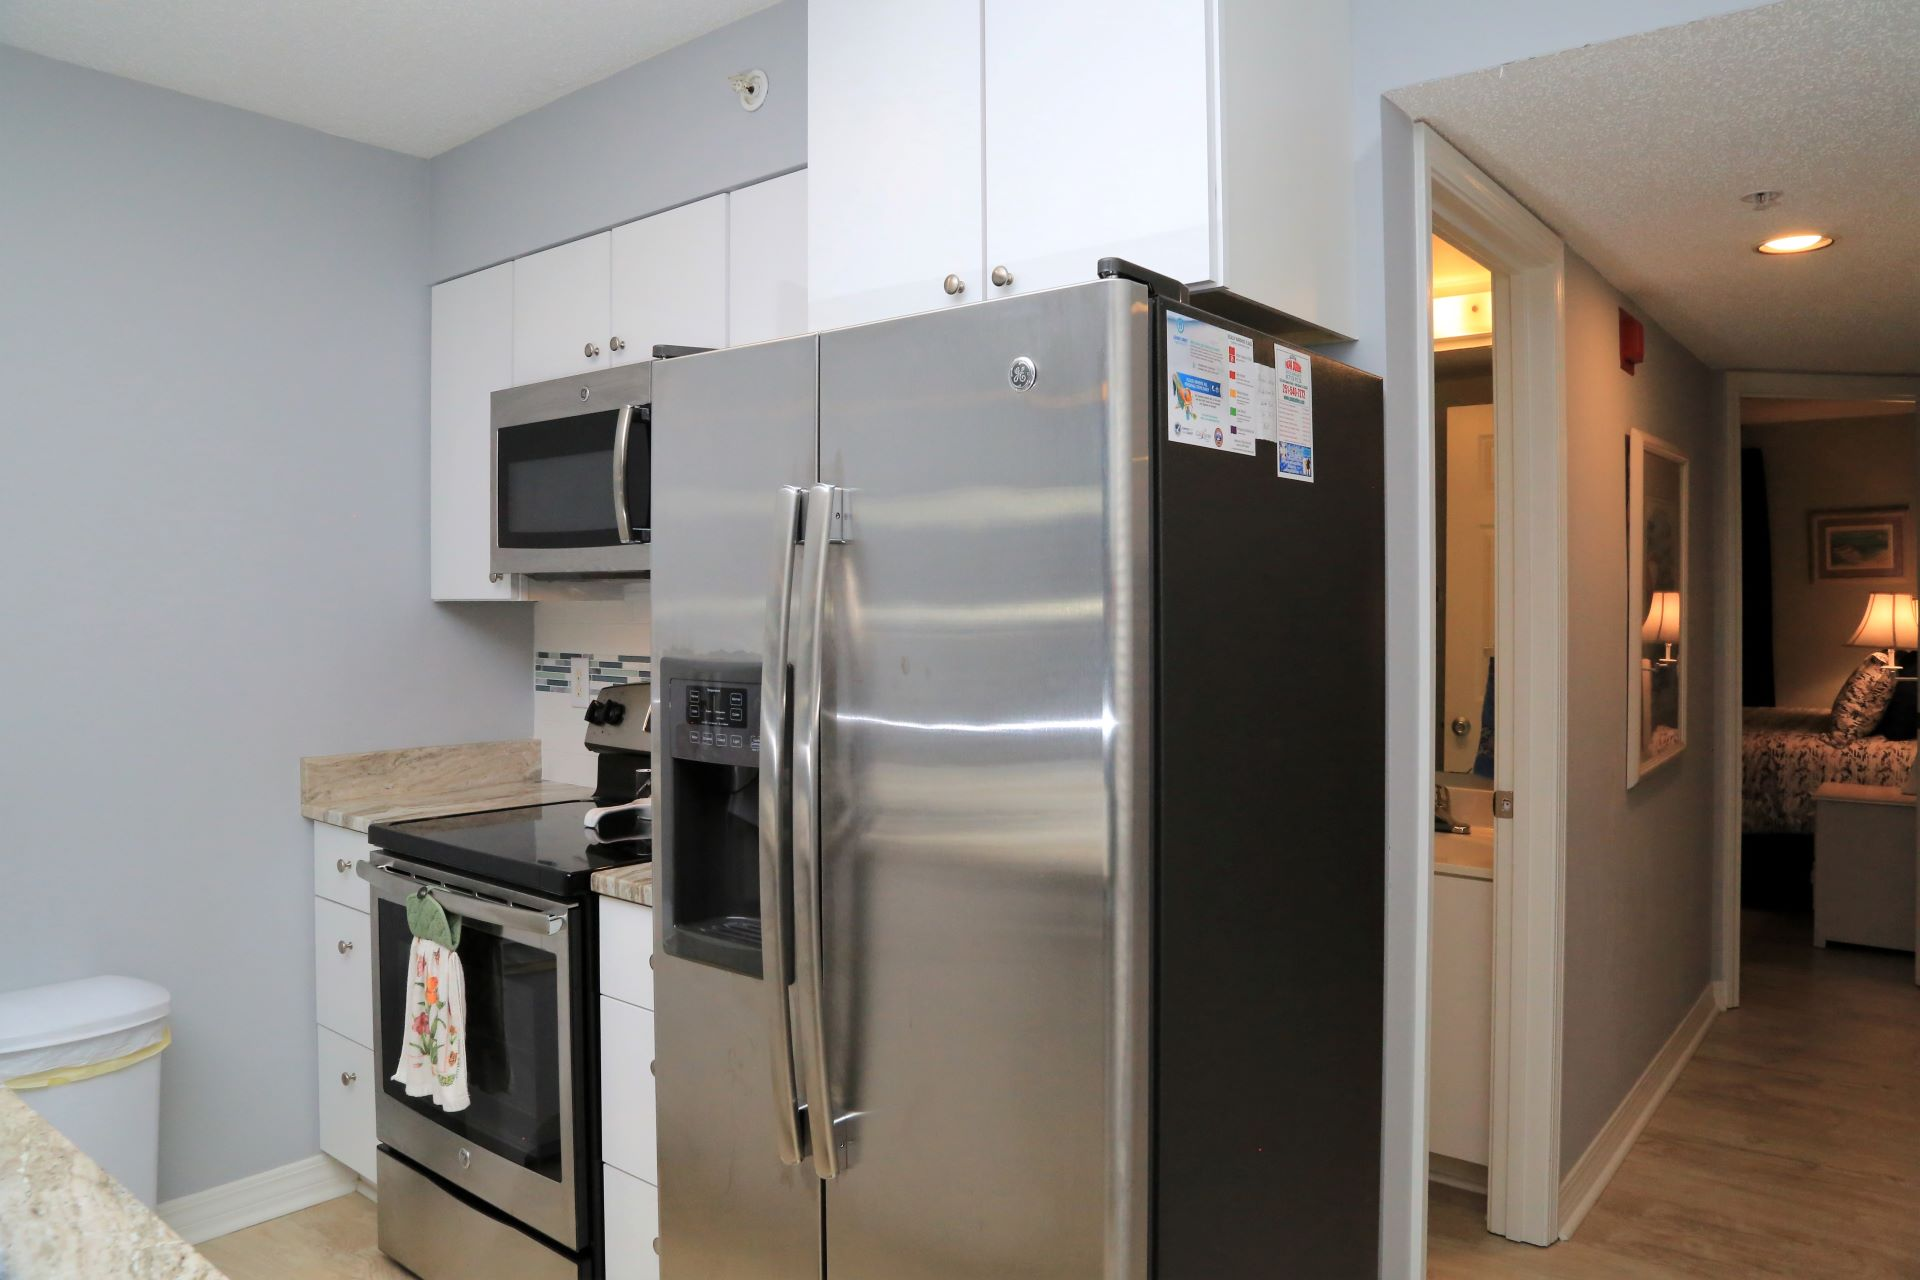 The well-appointed kitchen includes quality appliances and s